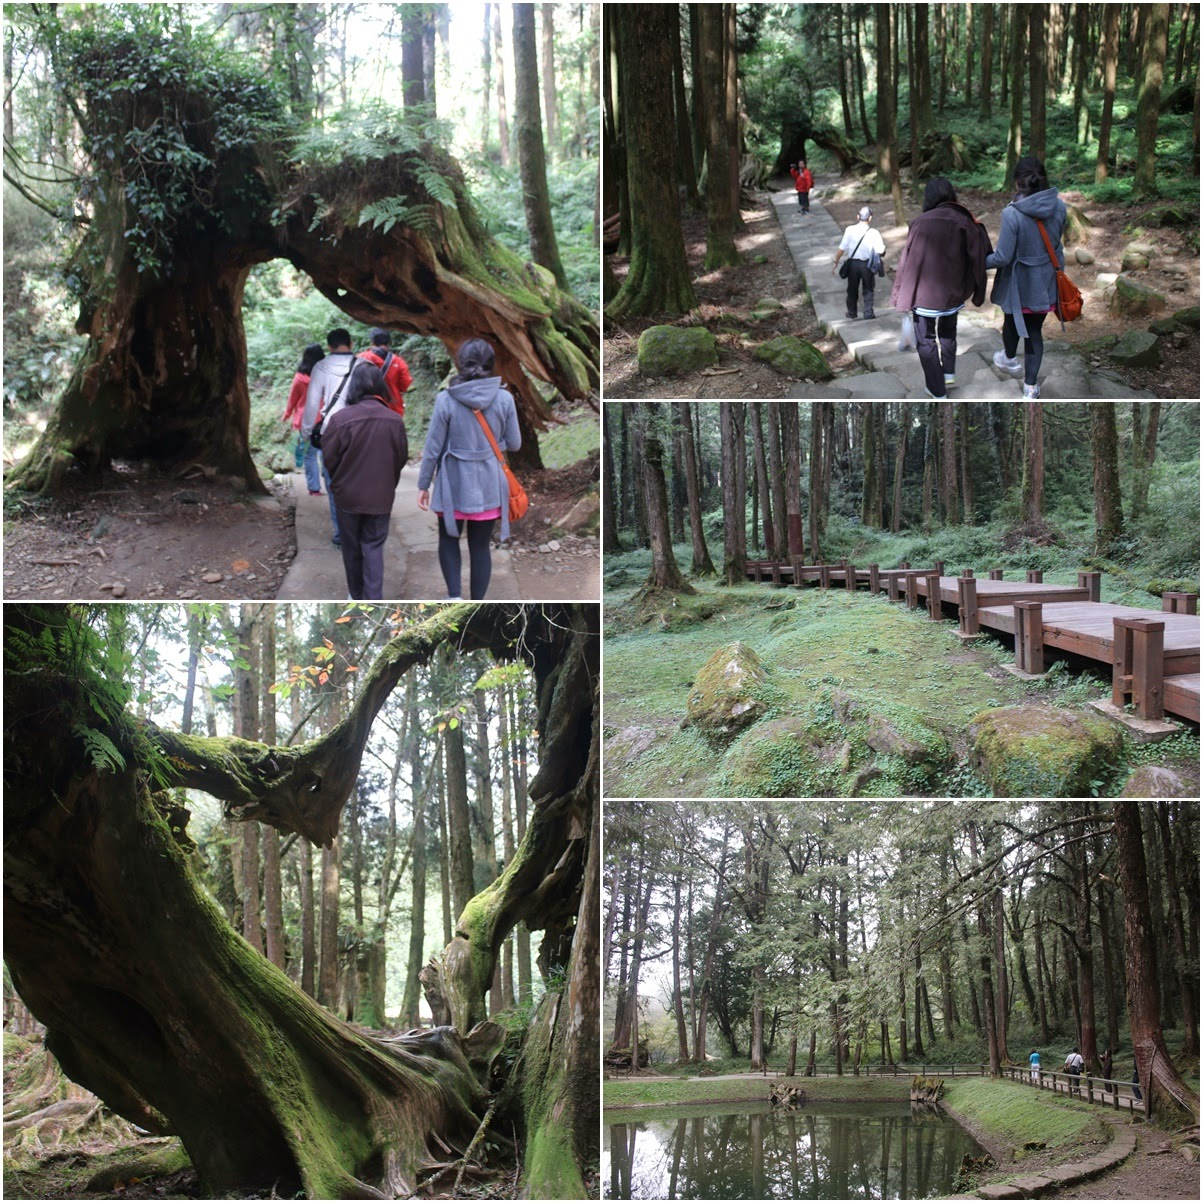 Hiking through the tree and love shape at Alishan Sacred Tree of Alishan Mountain in Chiayi County of Taiwan